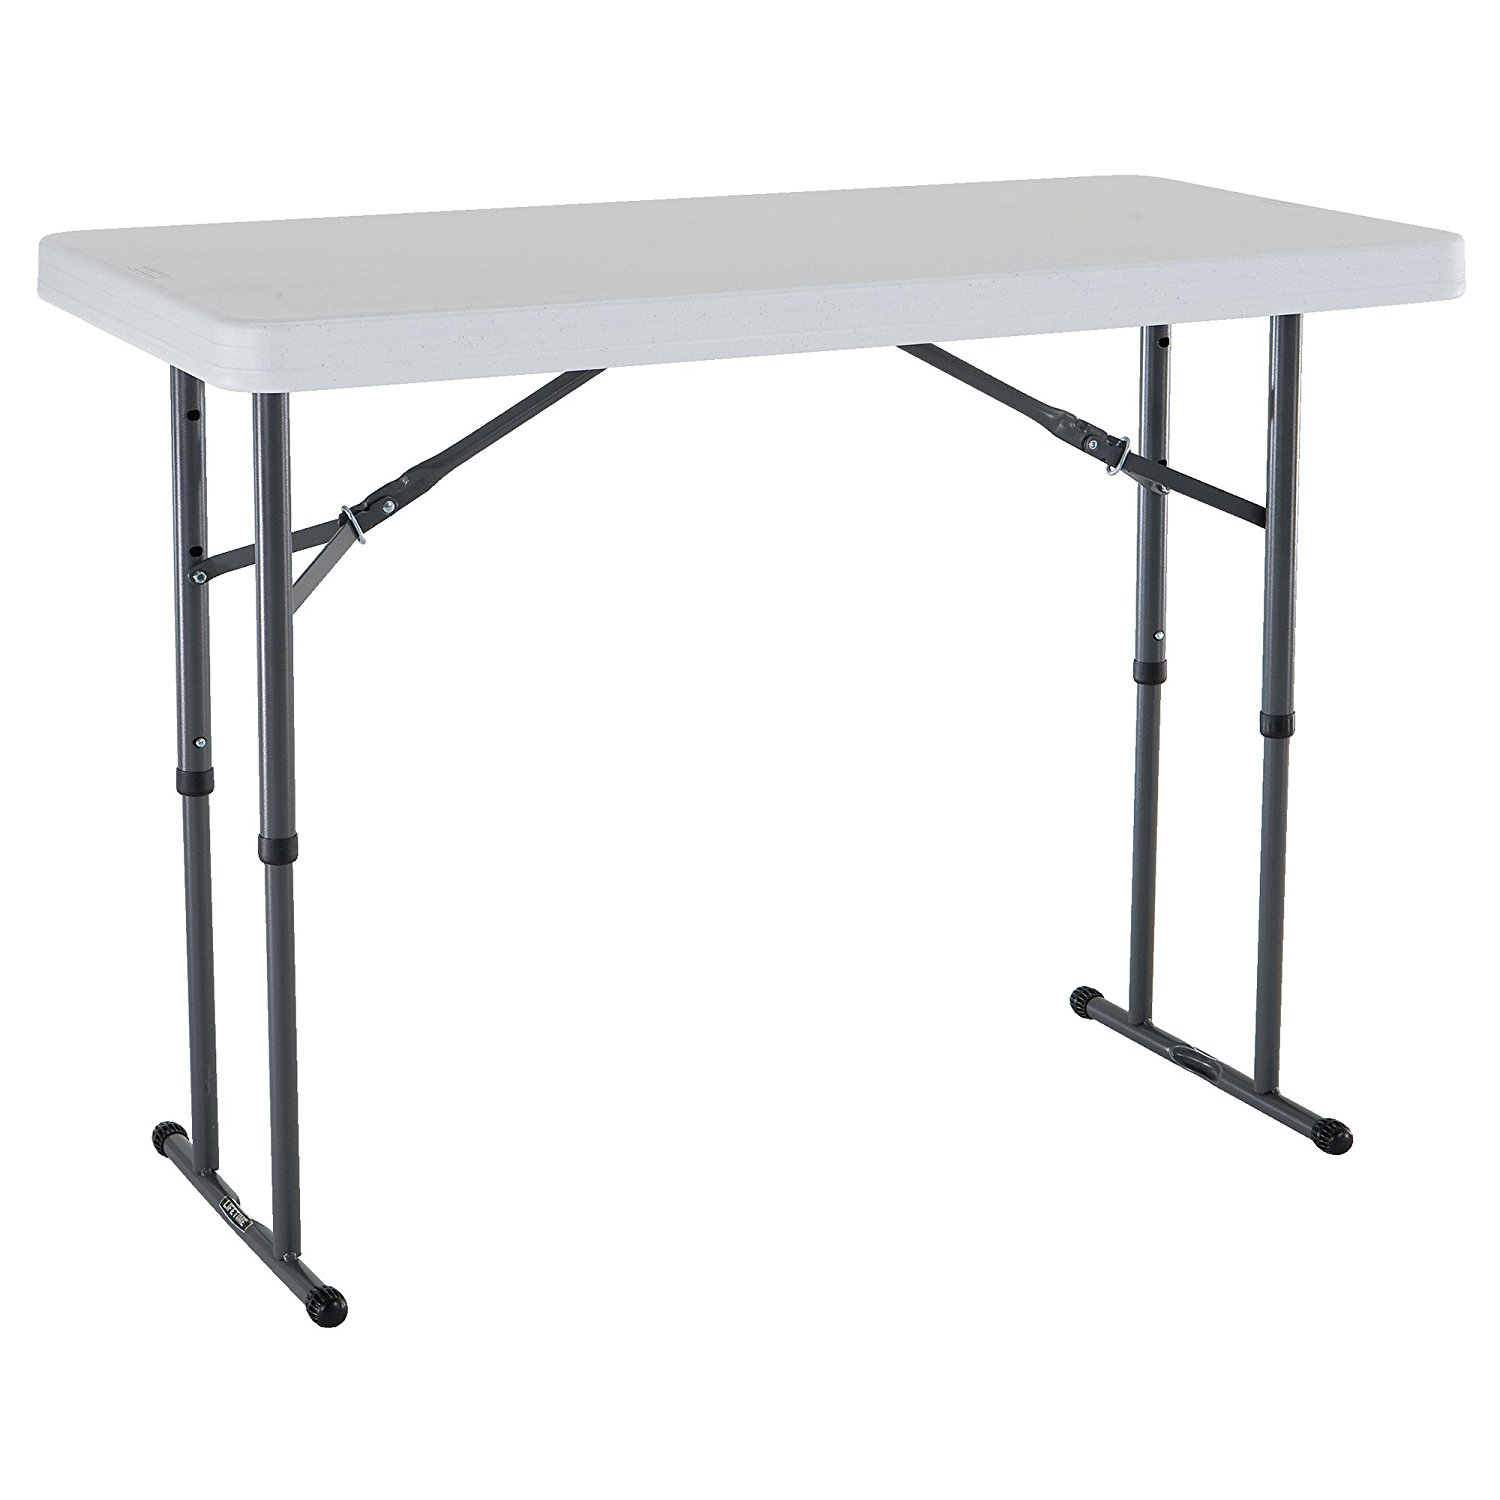 80160 Commercial Height Adjule Folding Utility Table 4 Feet White Granite Adjusts To 22 Inch Children S 29 And 36